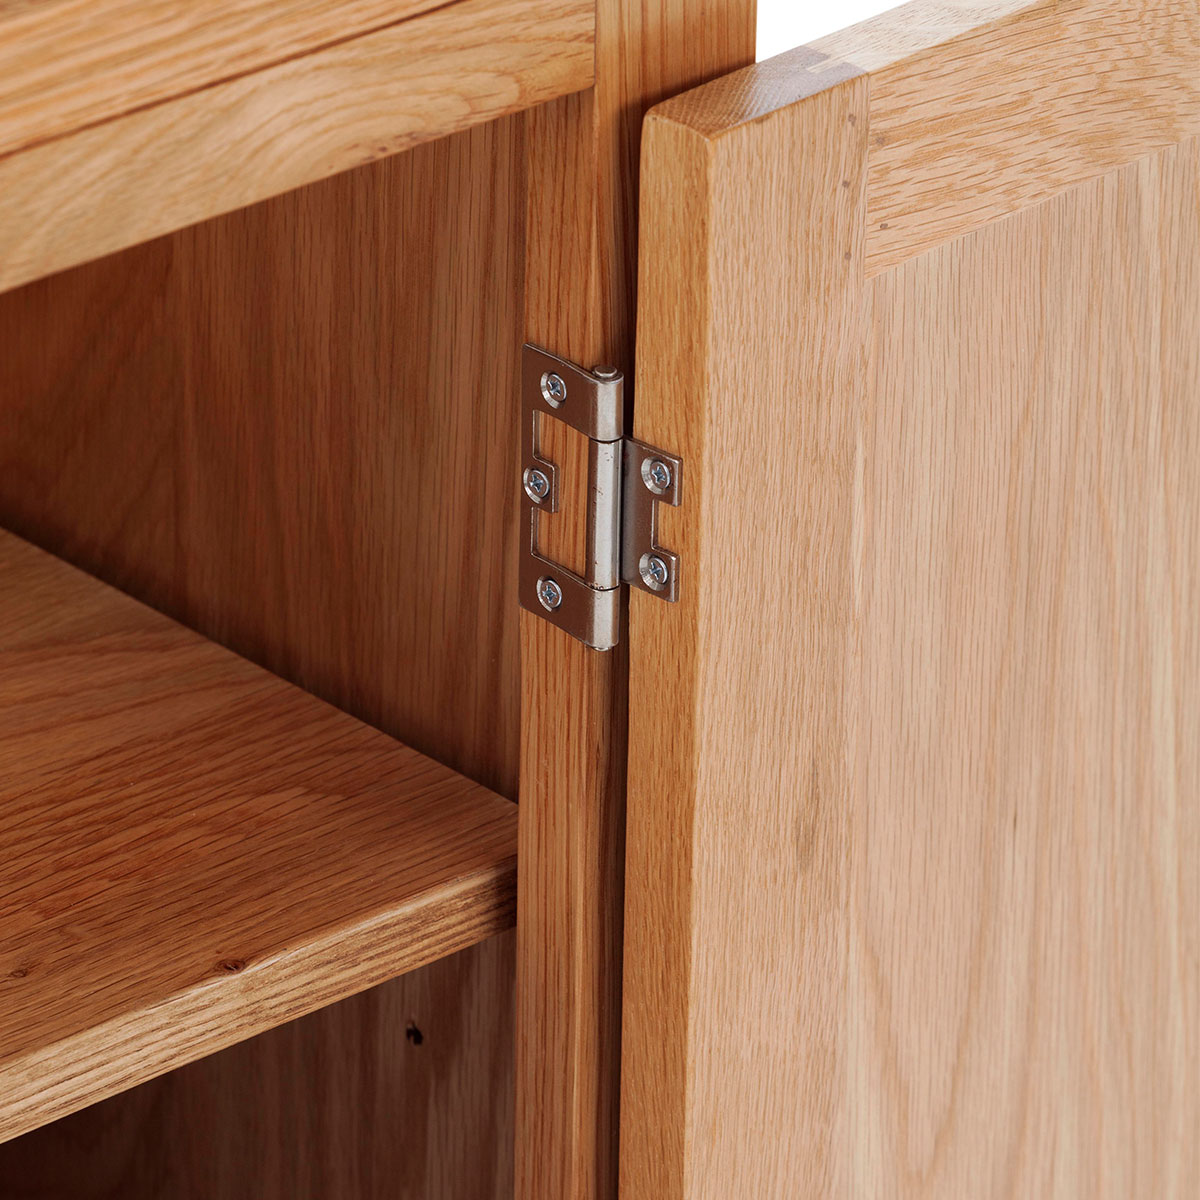 2 Door Sink Cabinet with with false drawer